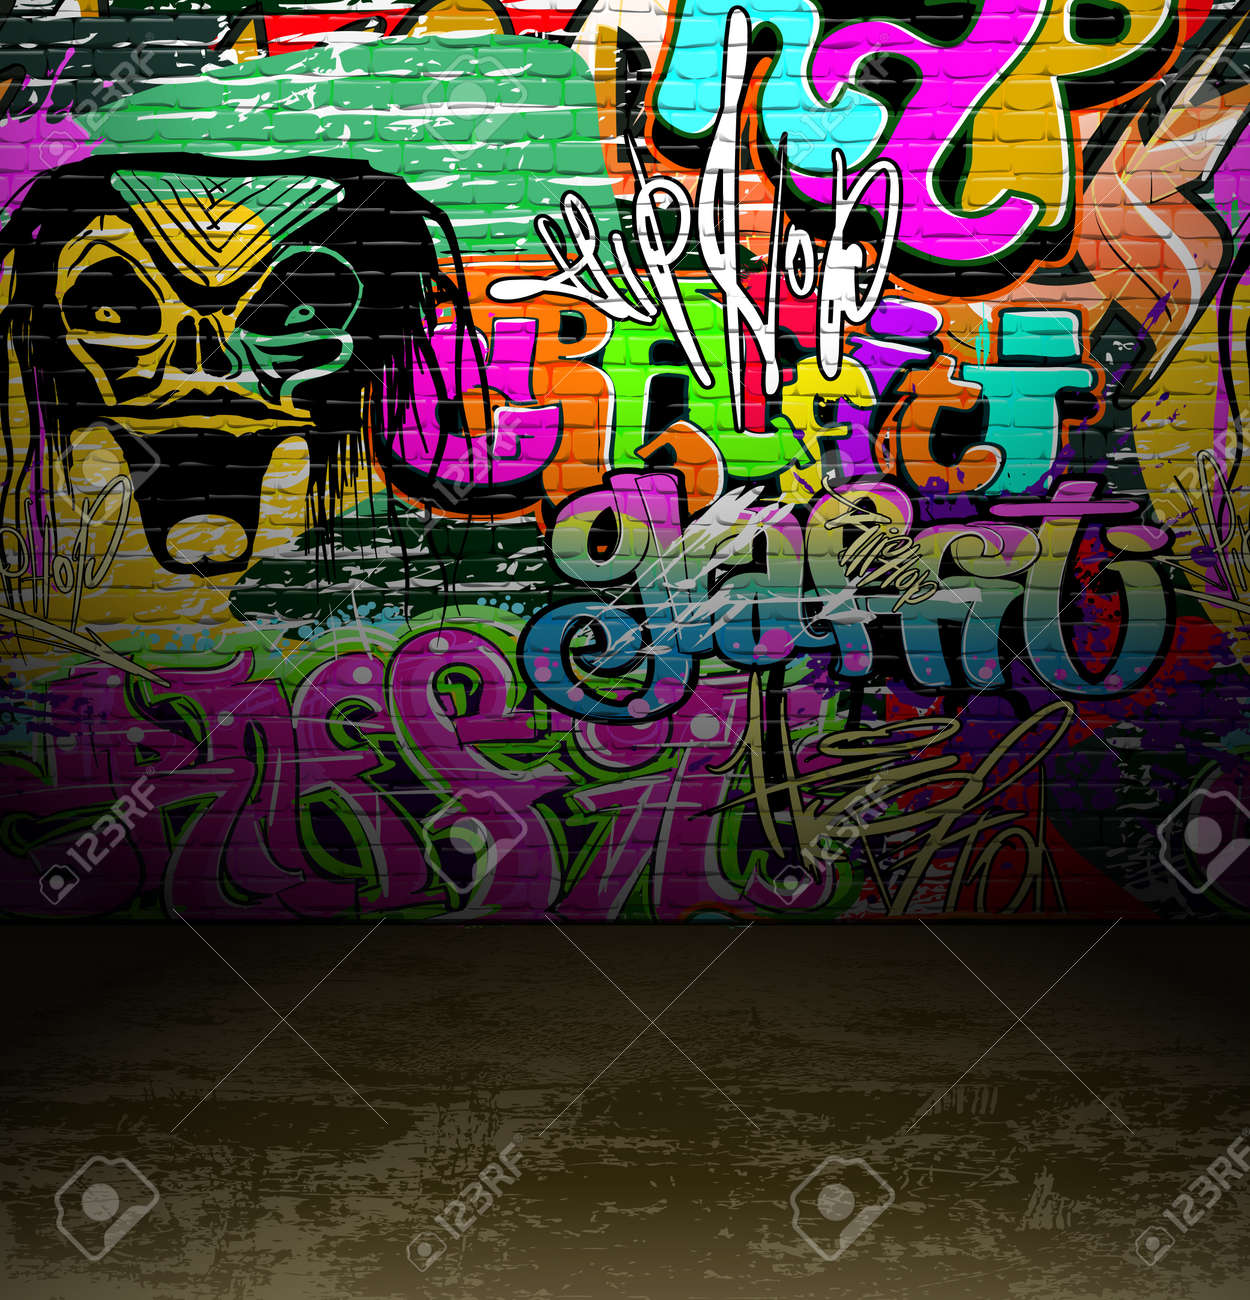 Graffiti Wall Background Urban Street Grunge Art Vector Design Stock